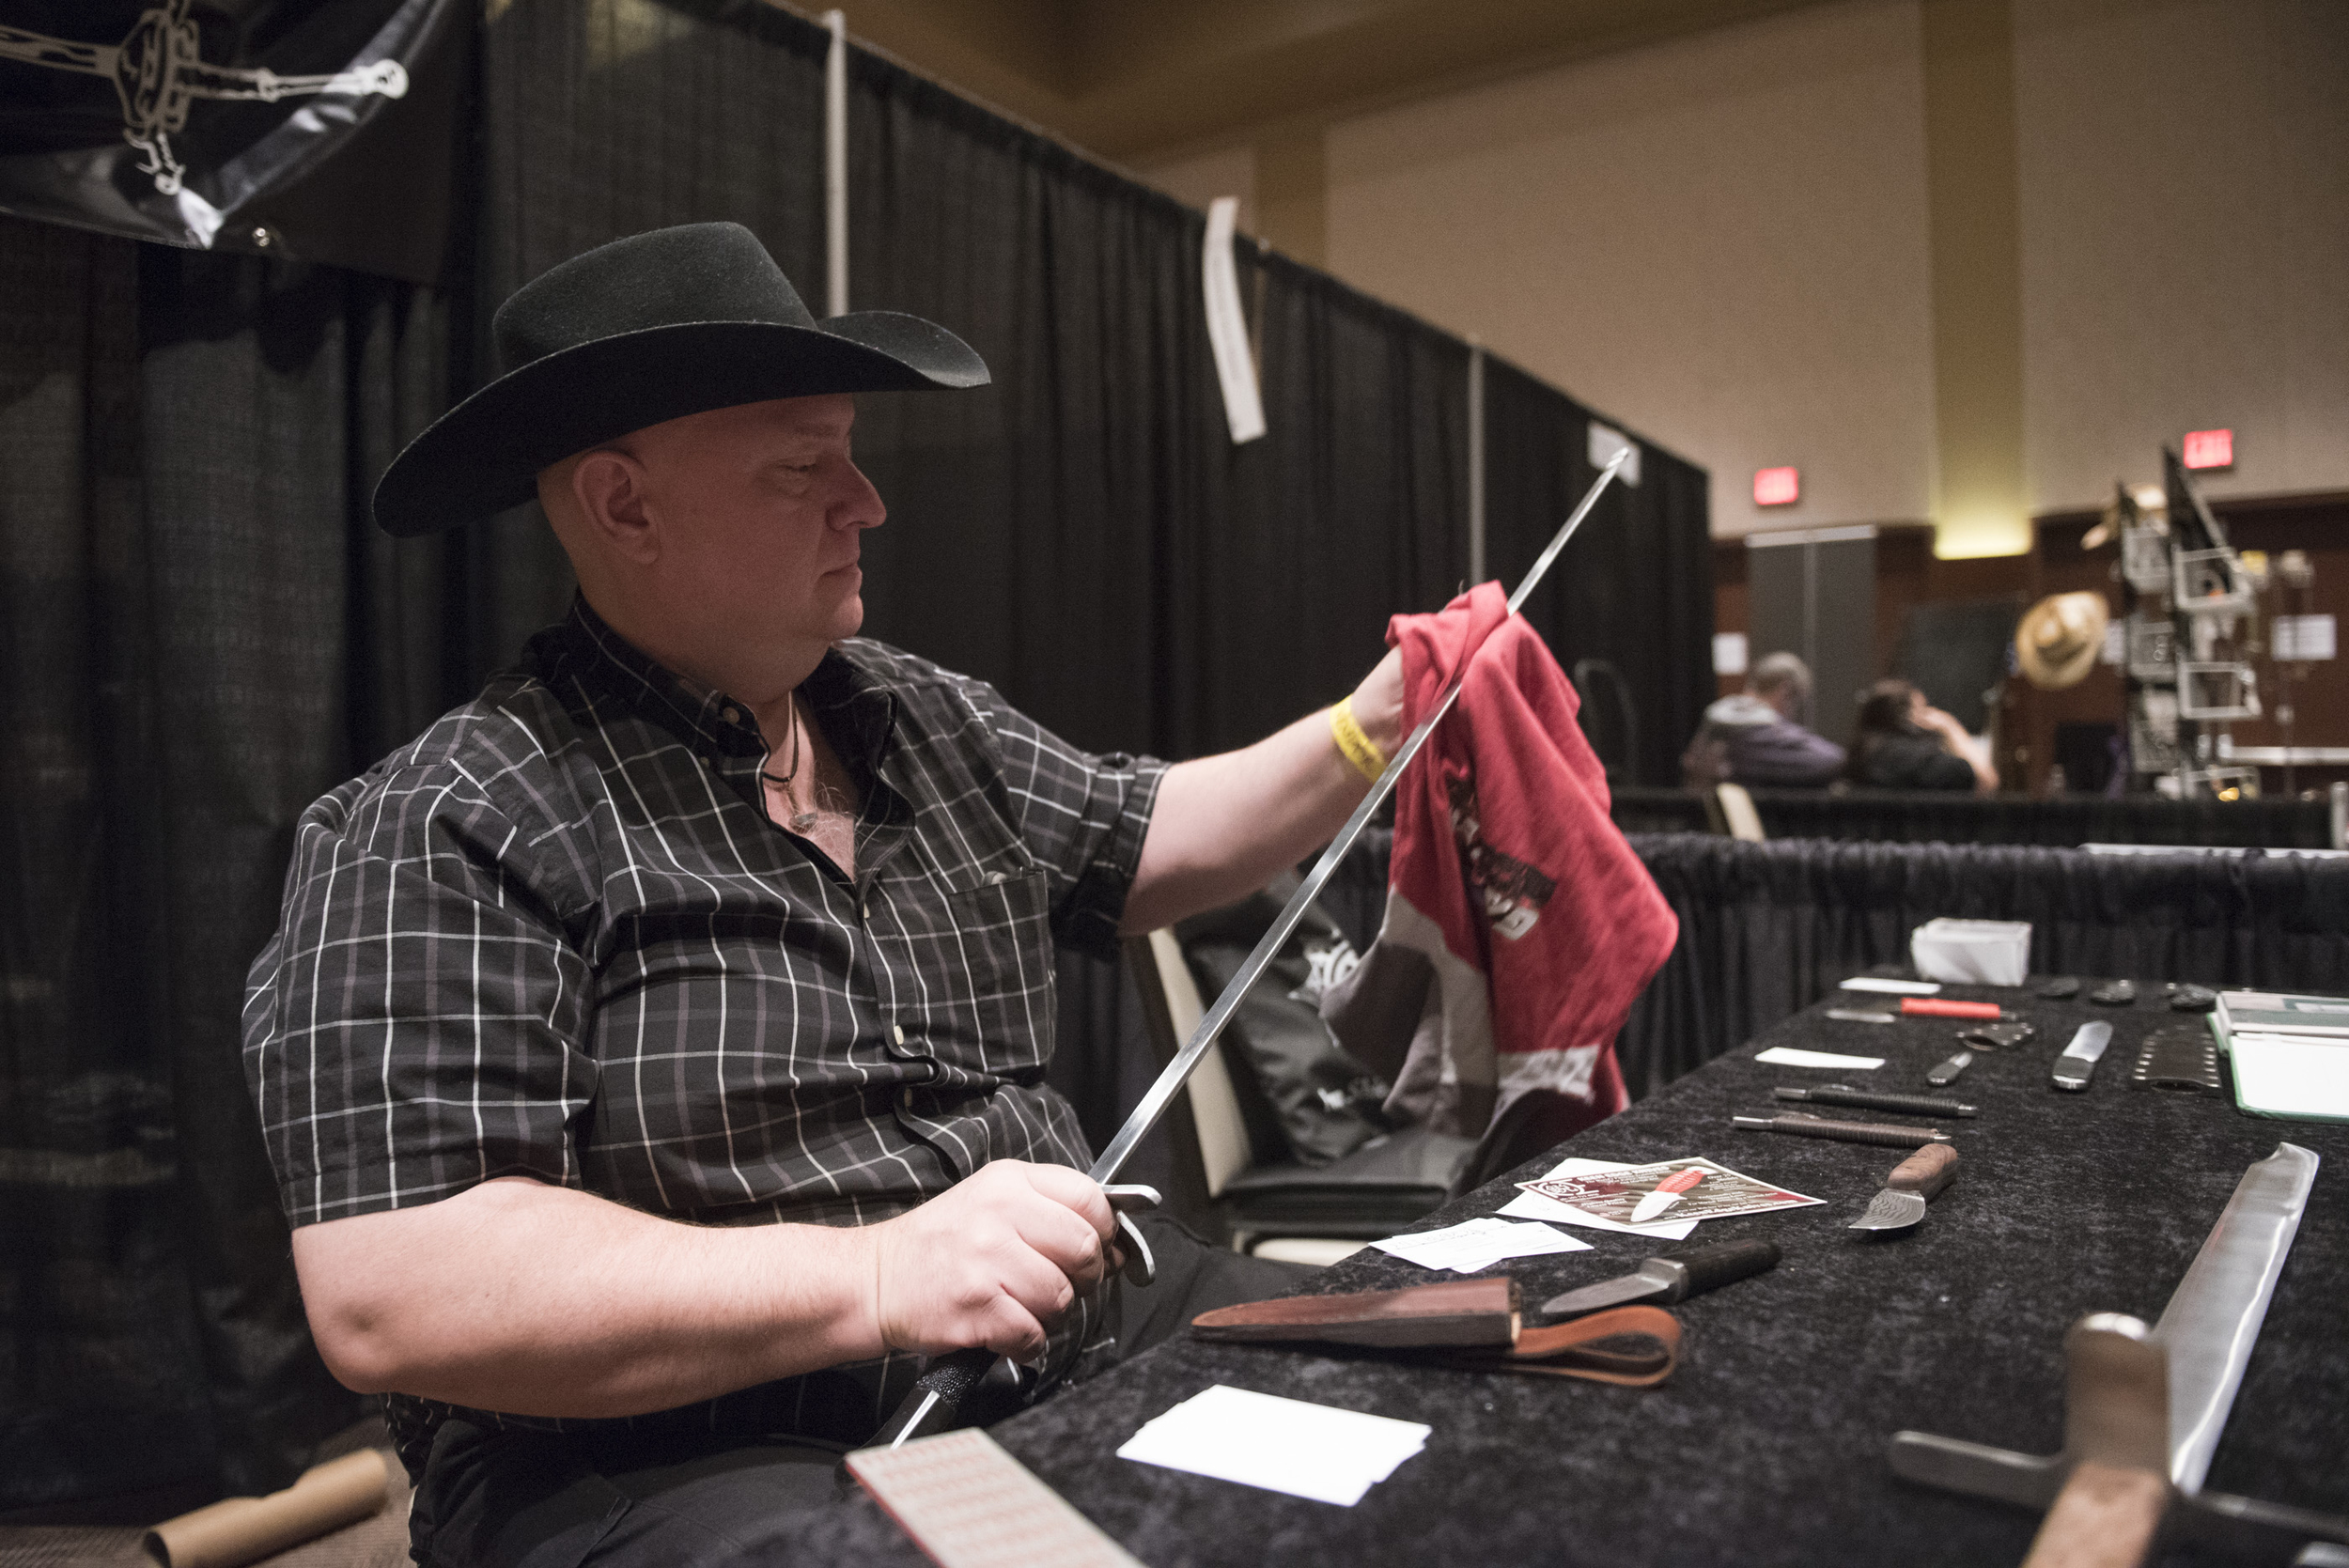 Garth Thompson of the Calgary, Canada area S.G.T. Blades cleans fingerprints off of his handmade sword at CombatCon at The Palms Resort and Casino in Las Vegas, Saturday, June 27, 2015.(Jason Ogulnik/Las Vegas Review-Journal)